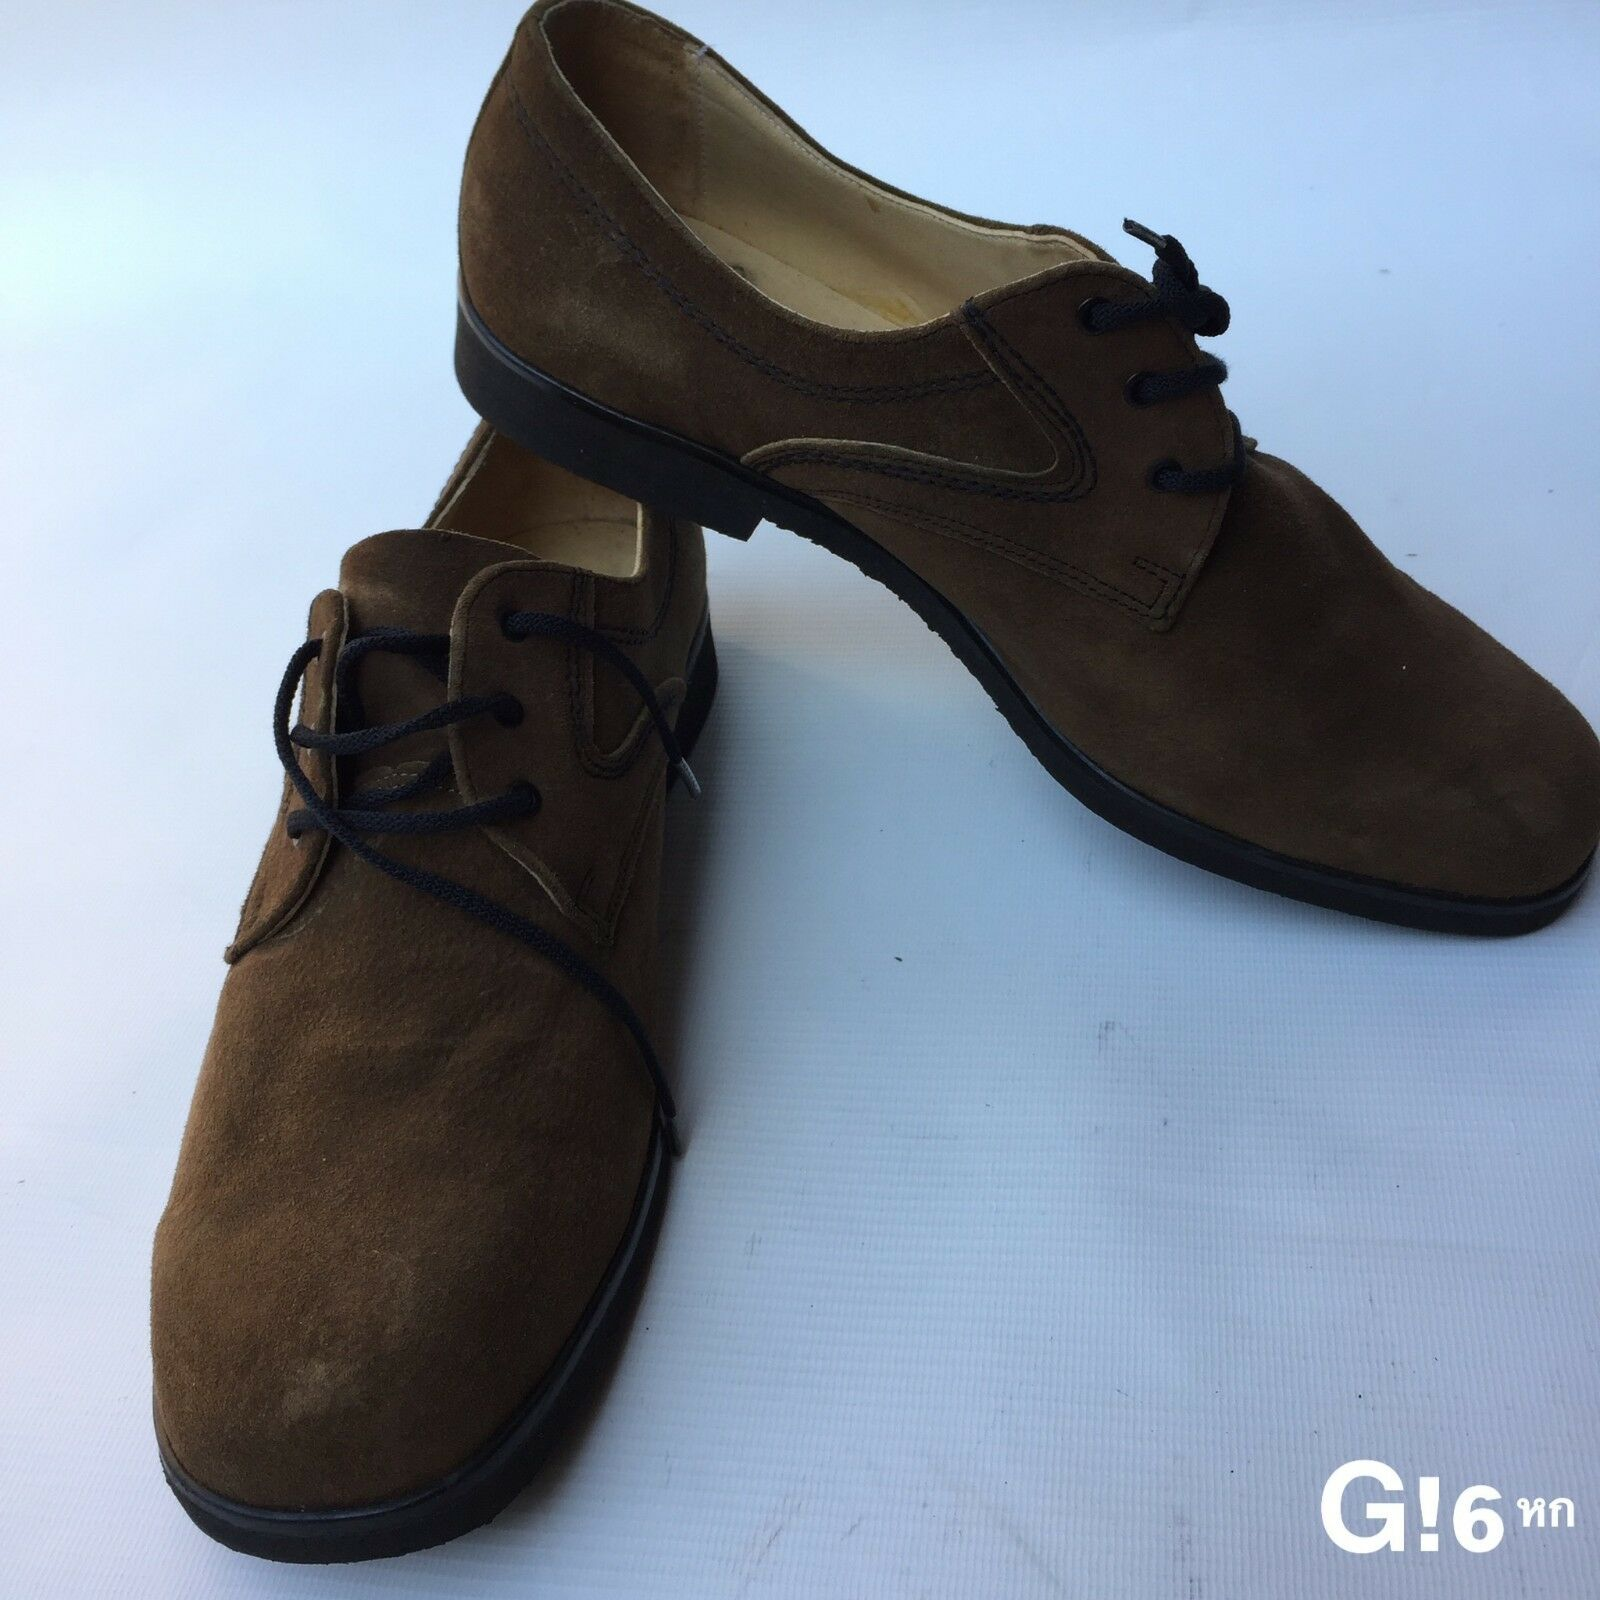 Mens CEBO Size 9 (28cm toe to heel) Leather Brown Lace Up shoes